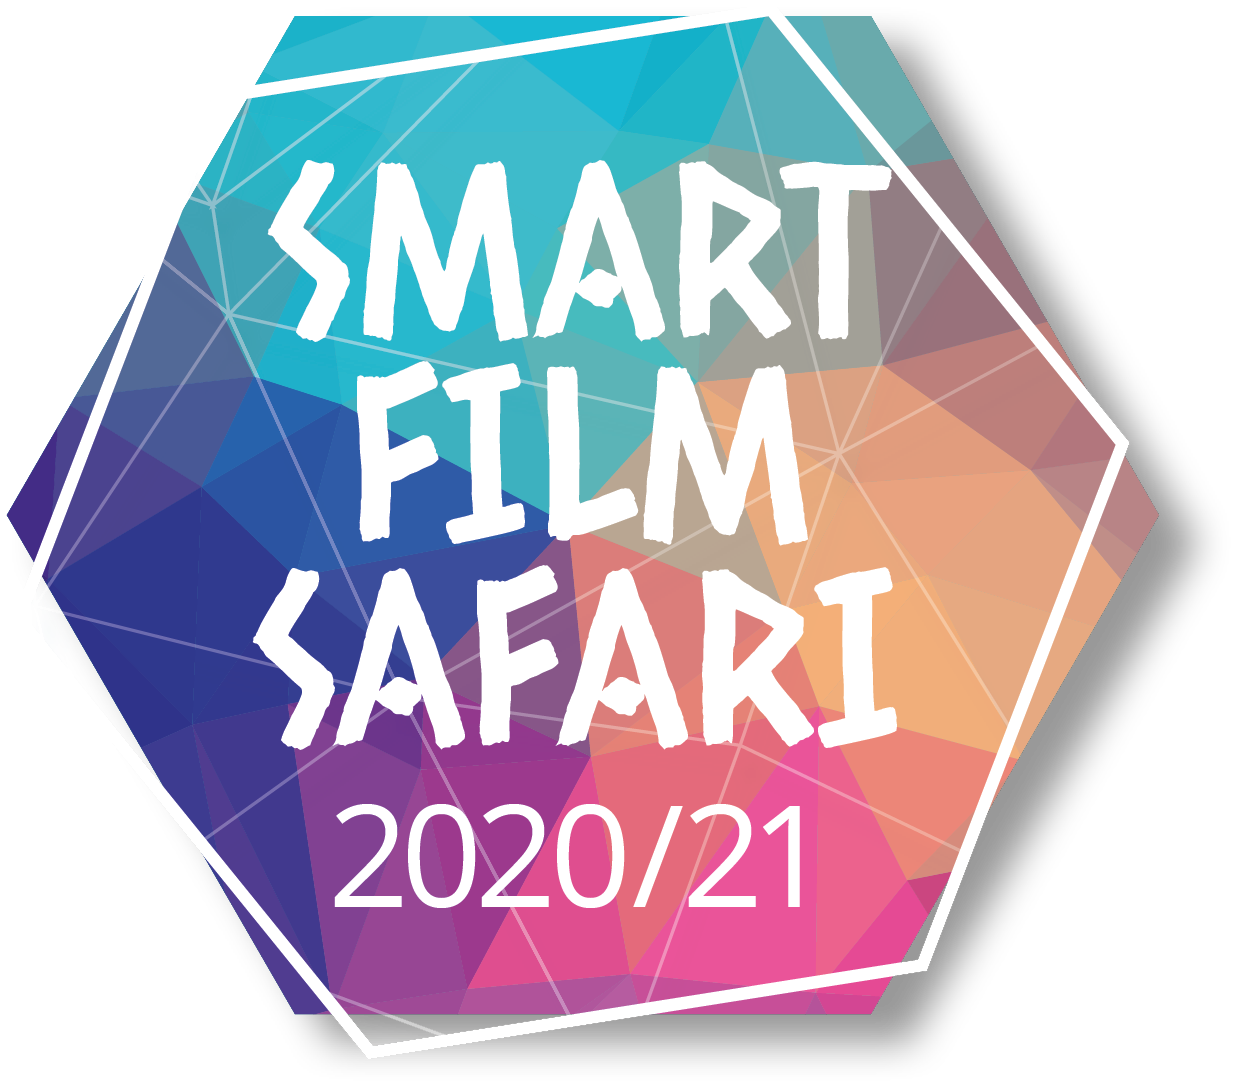 Smart-Film-Safari-2020-21-Logo